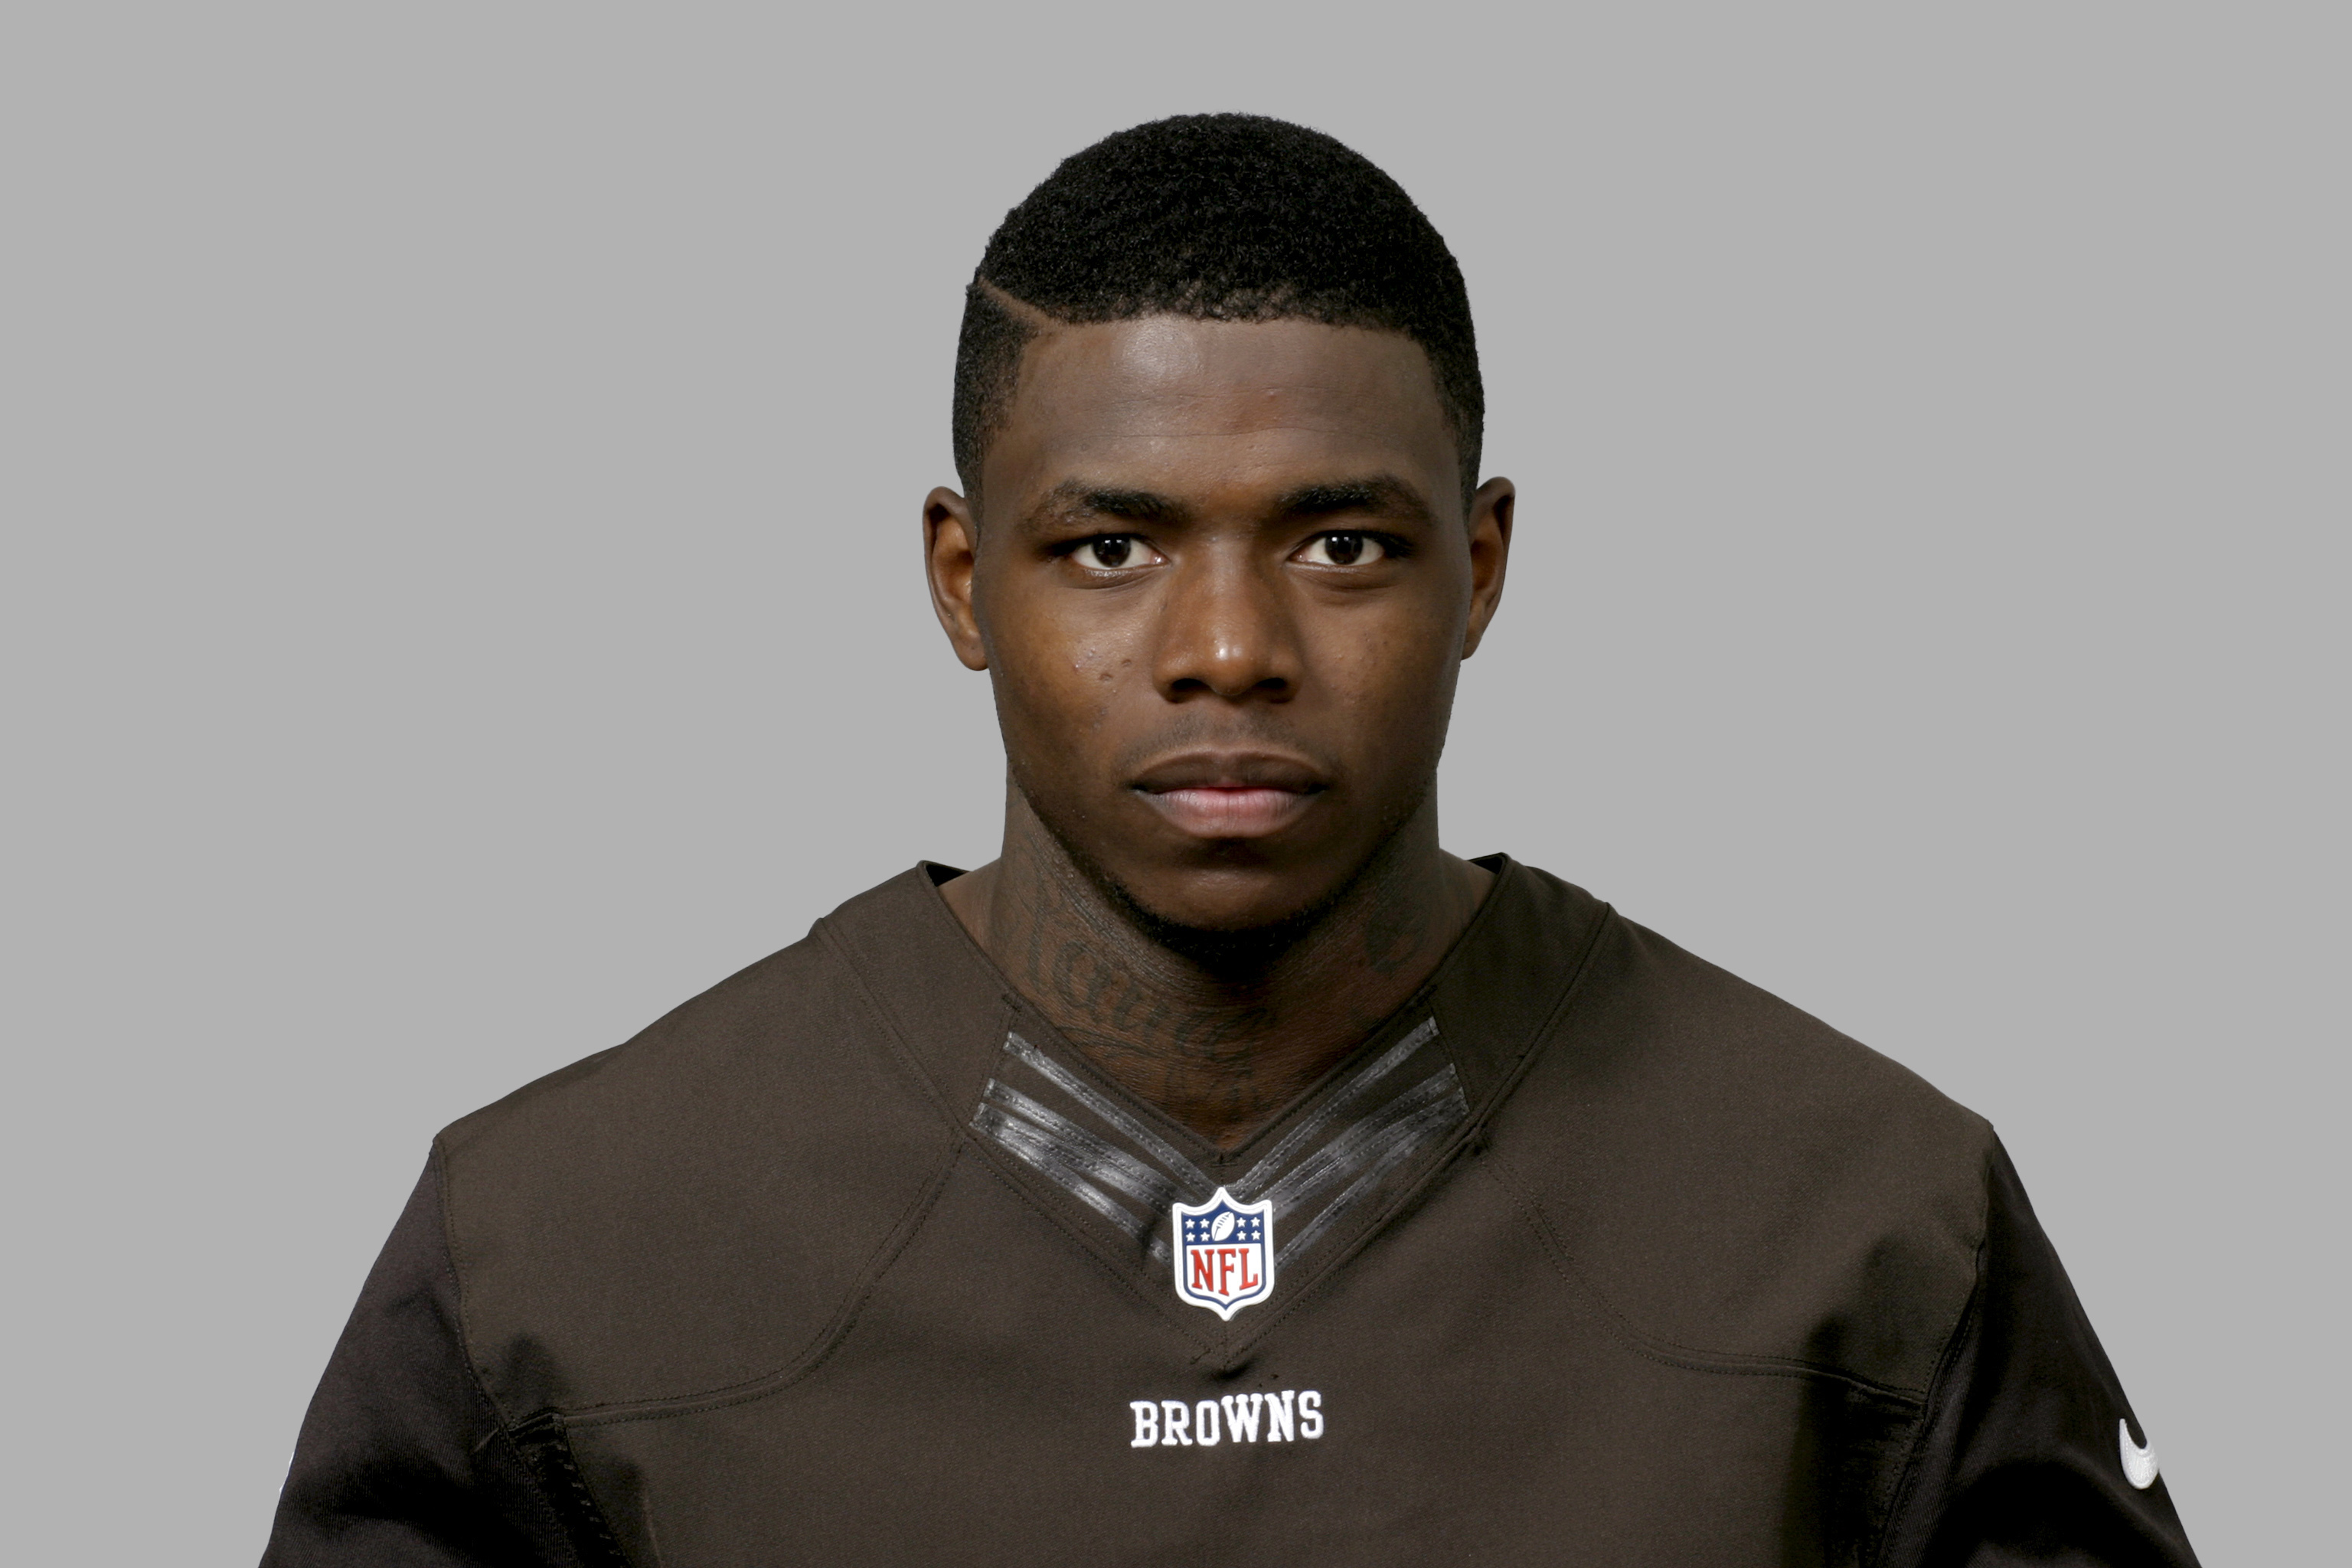 File-This July 8, 2014, file photo shows Josh Gordon of the Cleveland Browns NFL football team.  Gordon displayed a willingness to change when he met with team officials after being reinstated from a long suspension by NFL Commissioner Roger Goodell. Gord